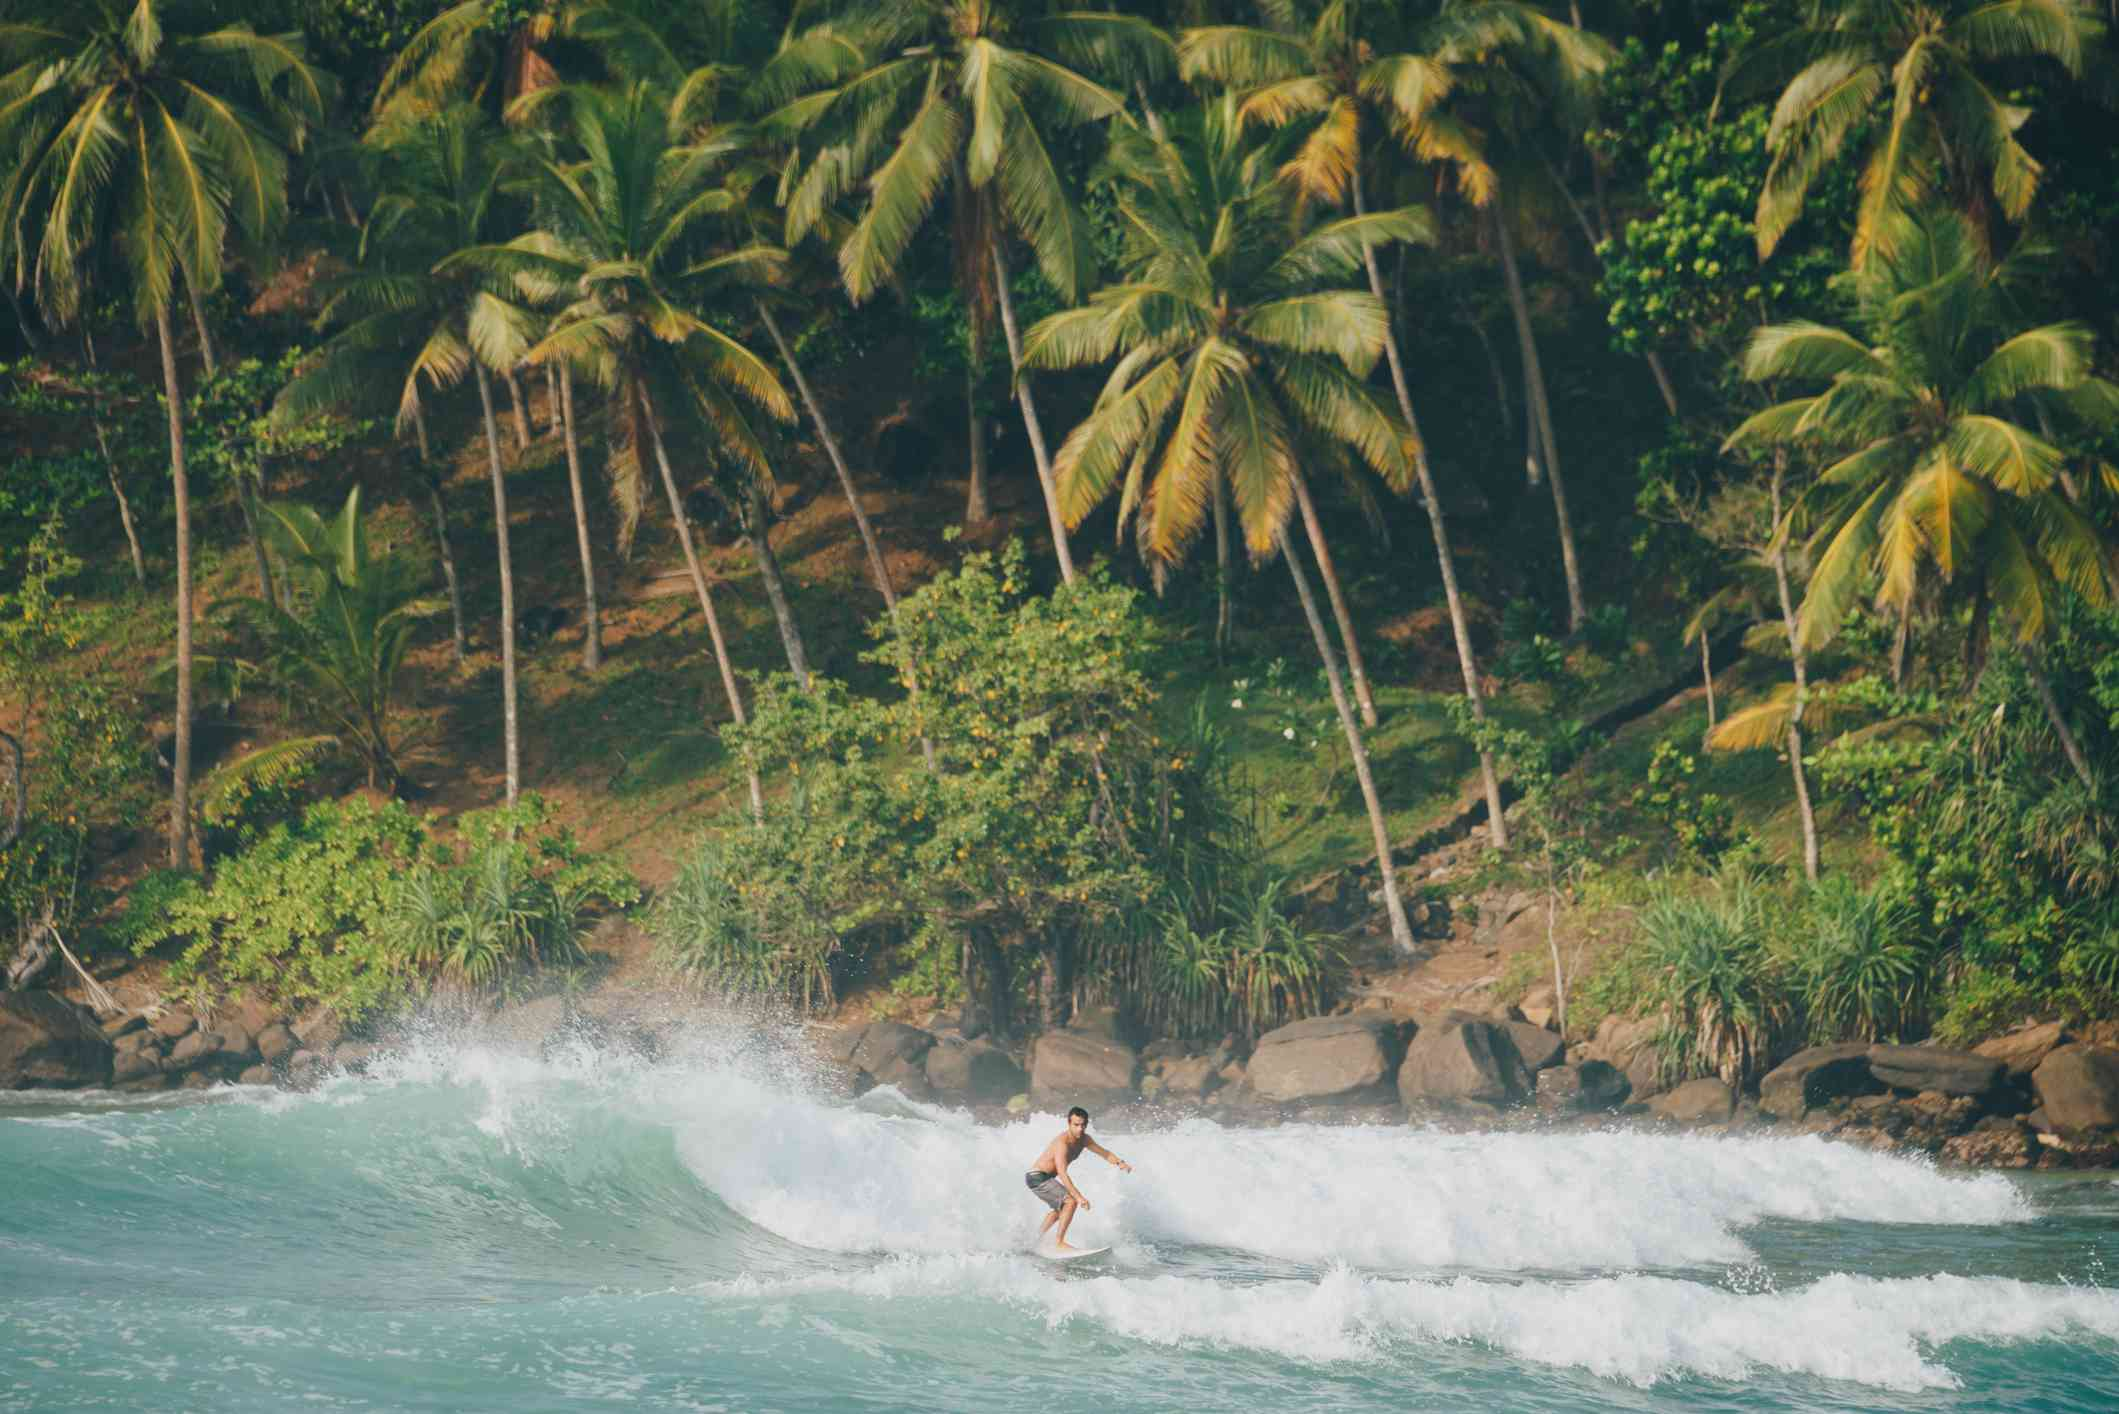 Surfers at Mirissa beach in Sri Lanka, view of a surfer with palm trees in the background